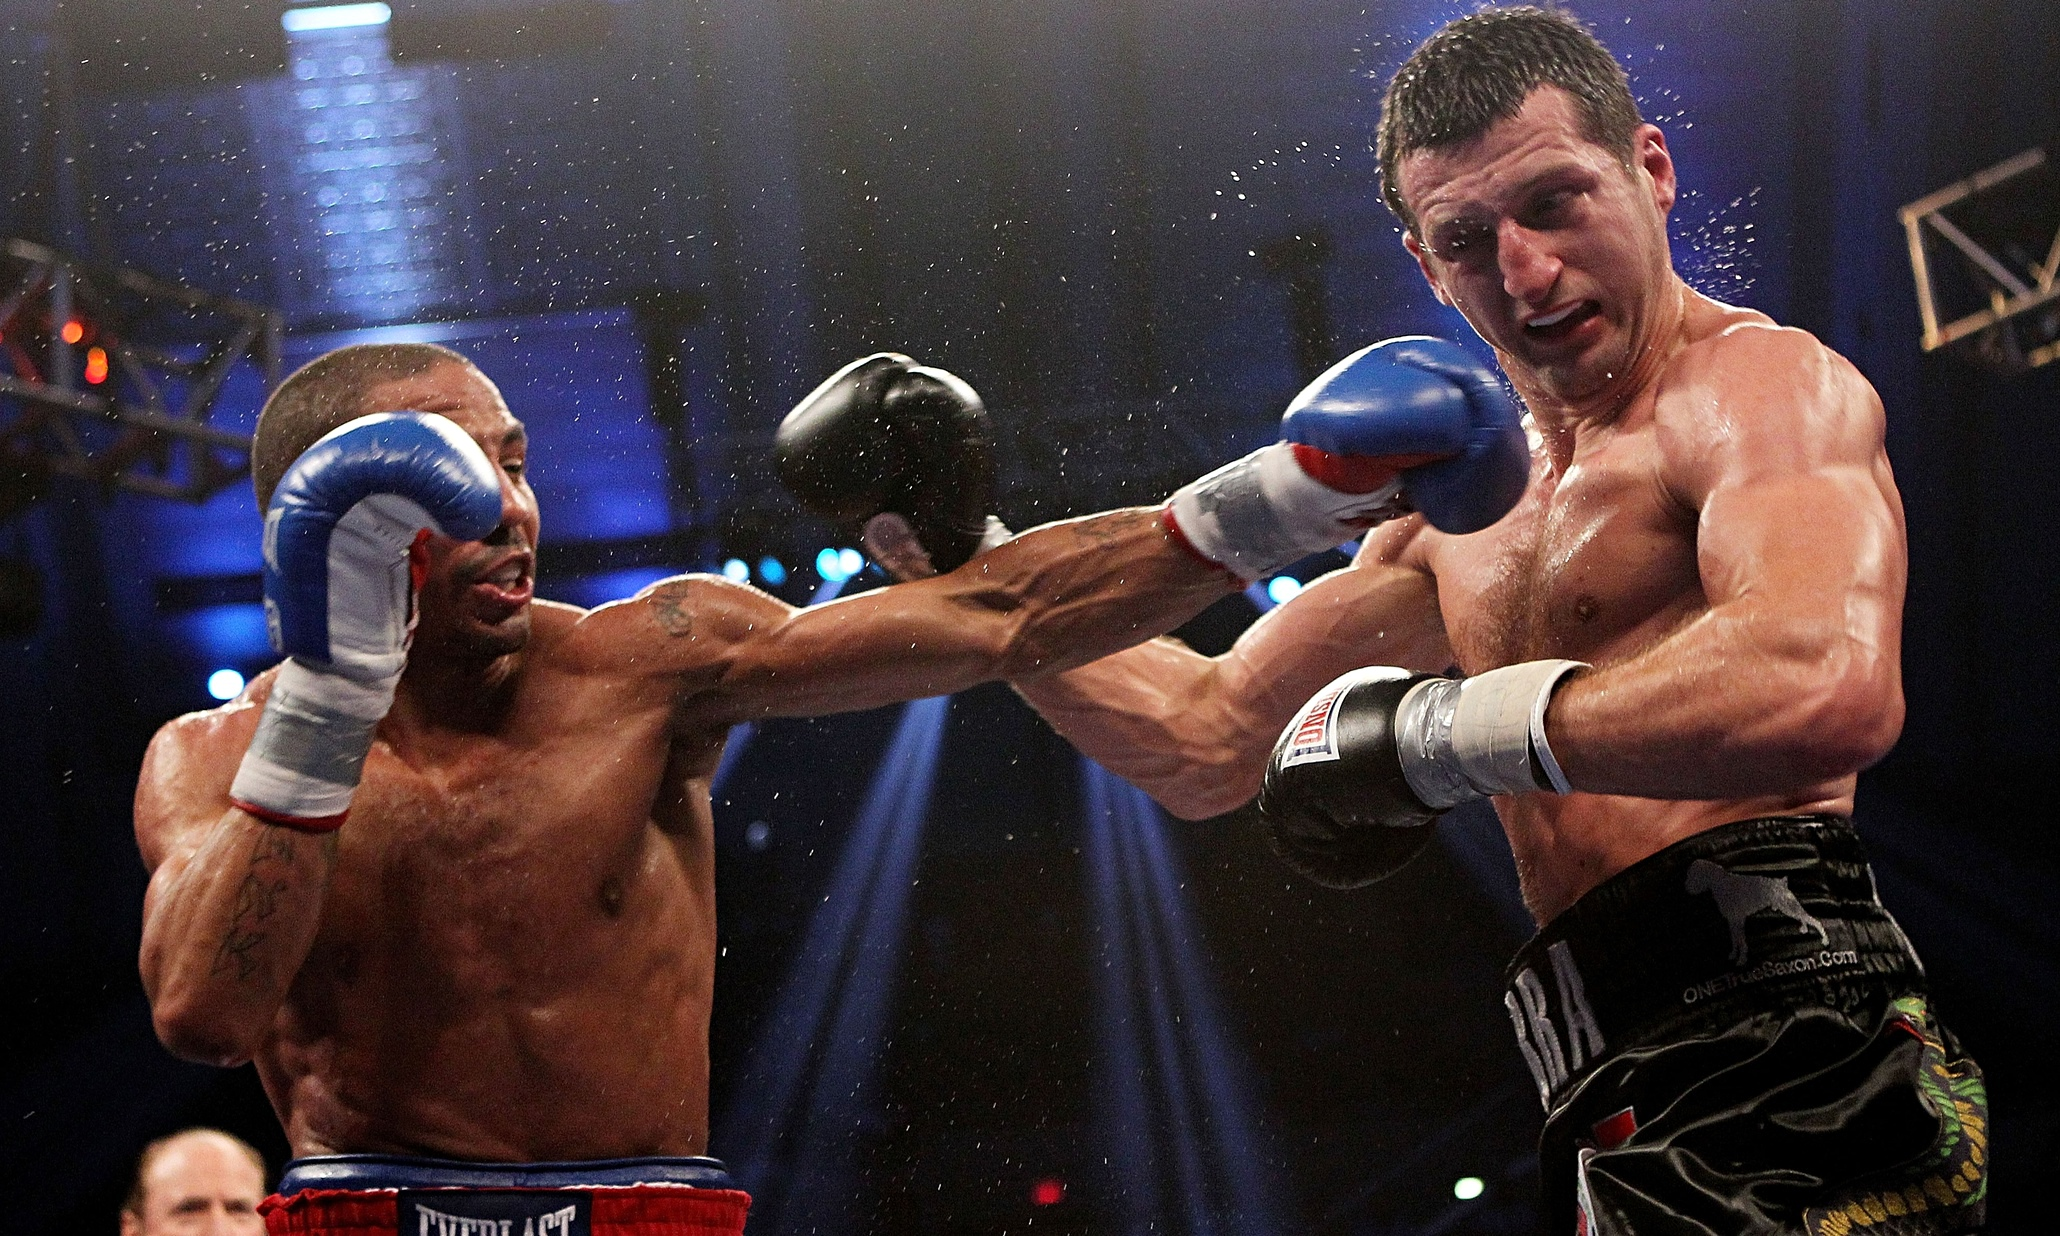 http://static.guim.co.uk/sys-images/Sport/Pix/pictures/2015/3/31/1427803109356/Andre-Ward-v-Carl-Froch-009.jpg